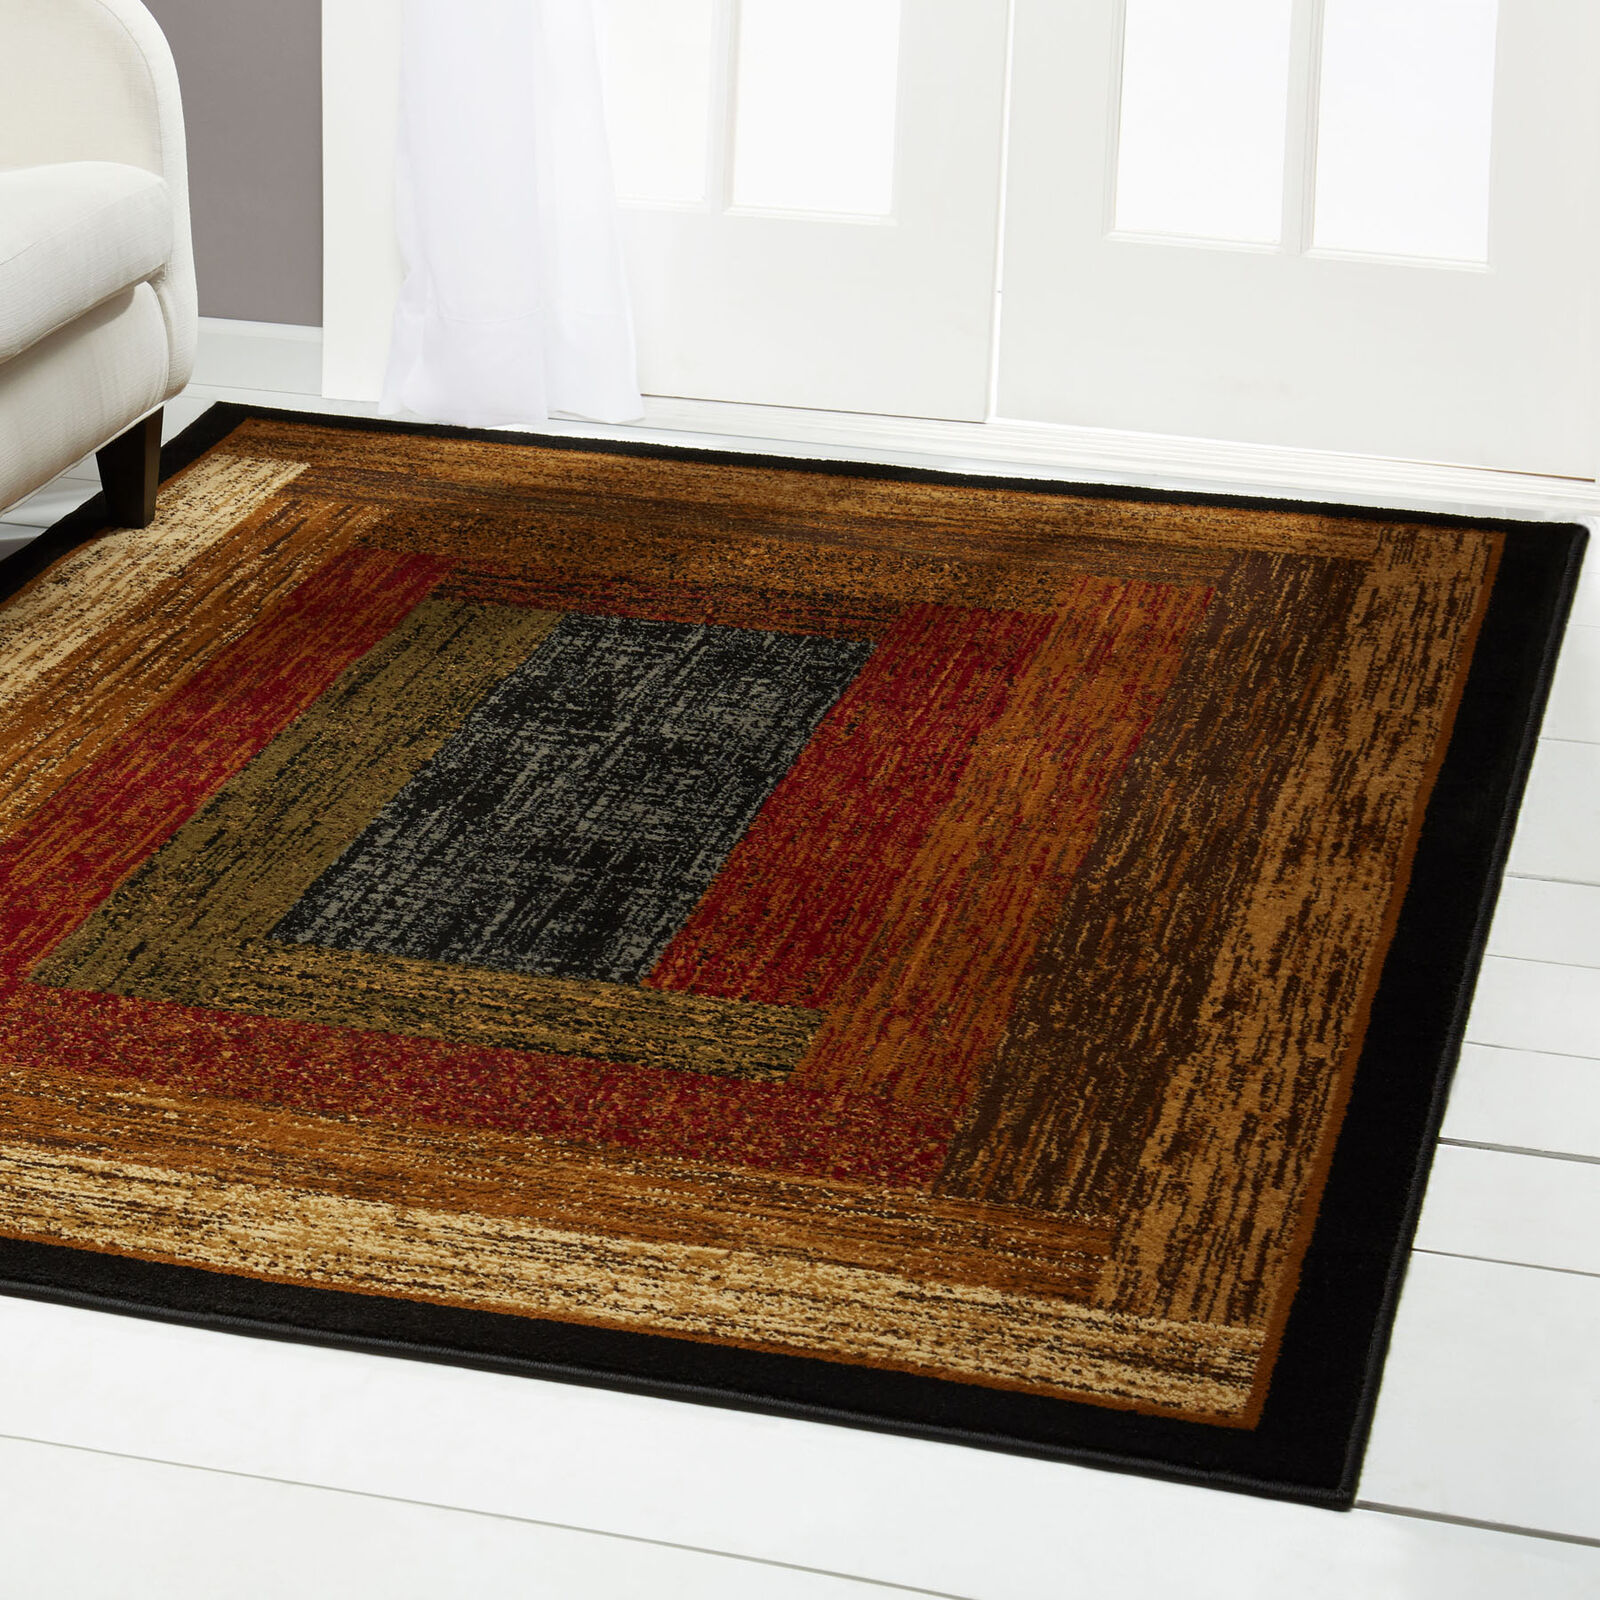 Red Green Beige Tan Bordered Modern Geometric Area Rug Contemporary Carpet 1 Of 6free Shipping